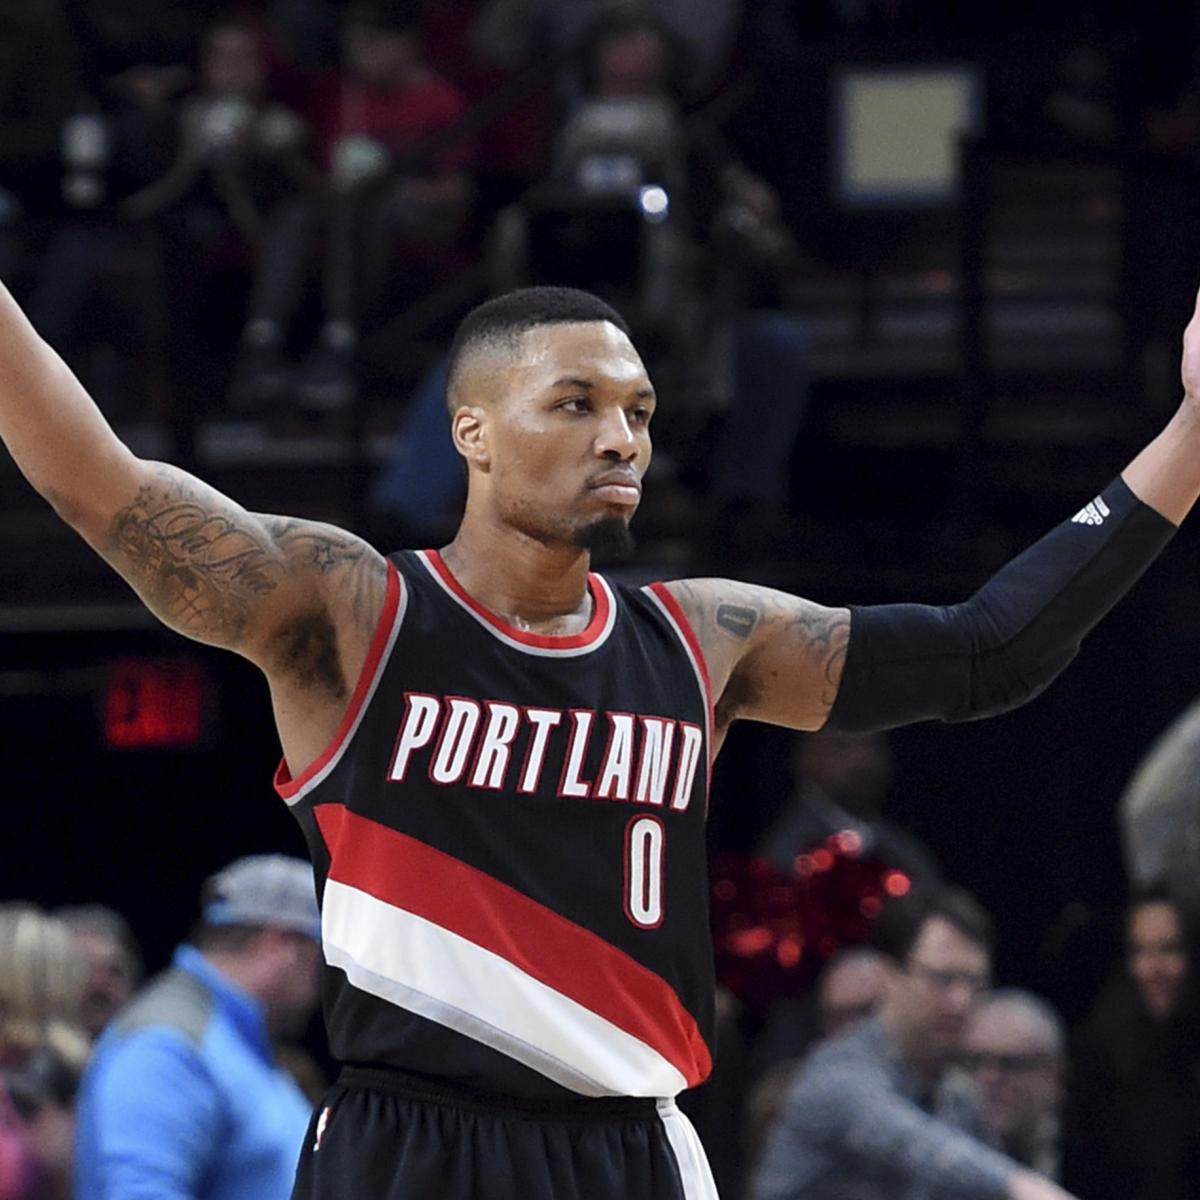 Portland Blazers Schedule: Portland Trail Blazers Reveal New Logo For 2017-18 Season